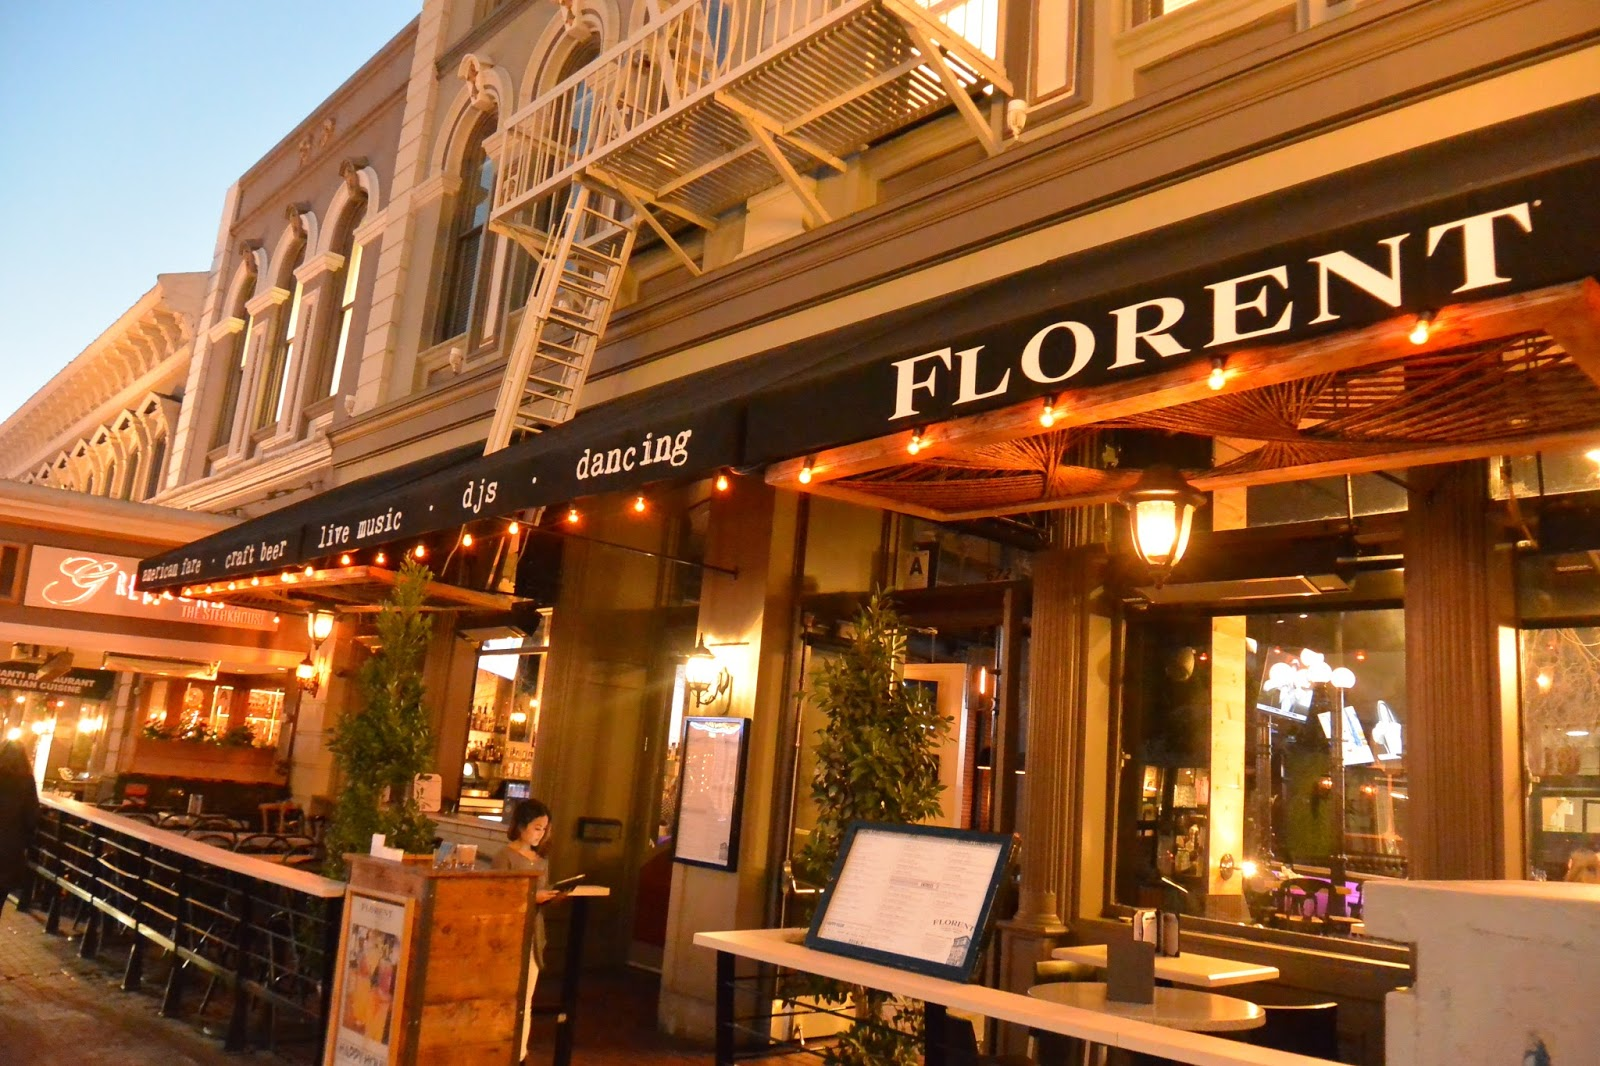 Like Many Restaurants Downtown, There Is A Patio With Outdoor (heated)  Dining. Weu0027re Very Lucky In San Diego To Have The Pleasure Of Outside Dining  Almost ...